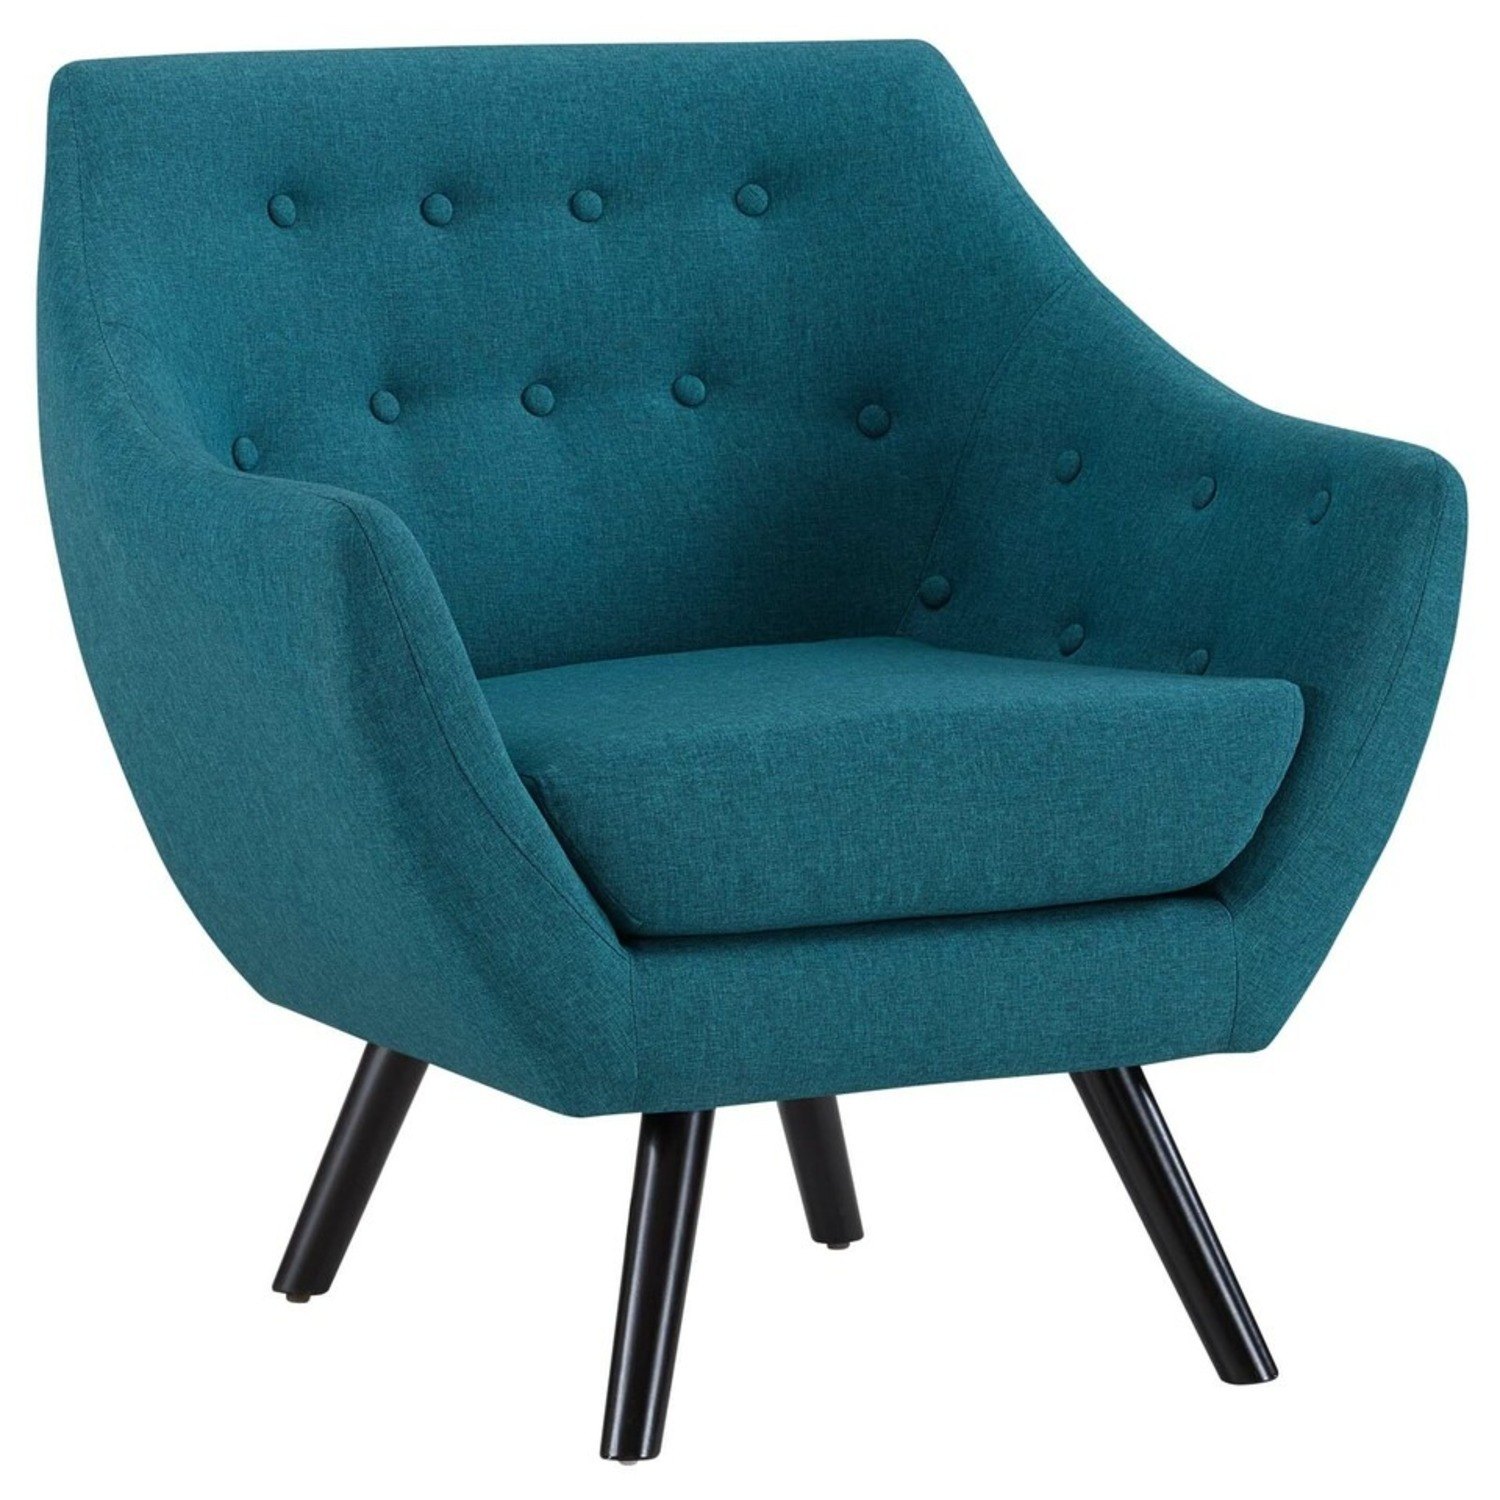 Armchair In Teal Fabric & Tufted Button Upholstery - image-1